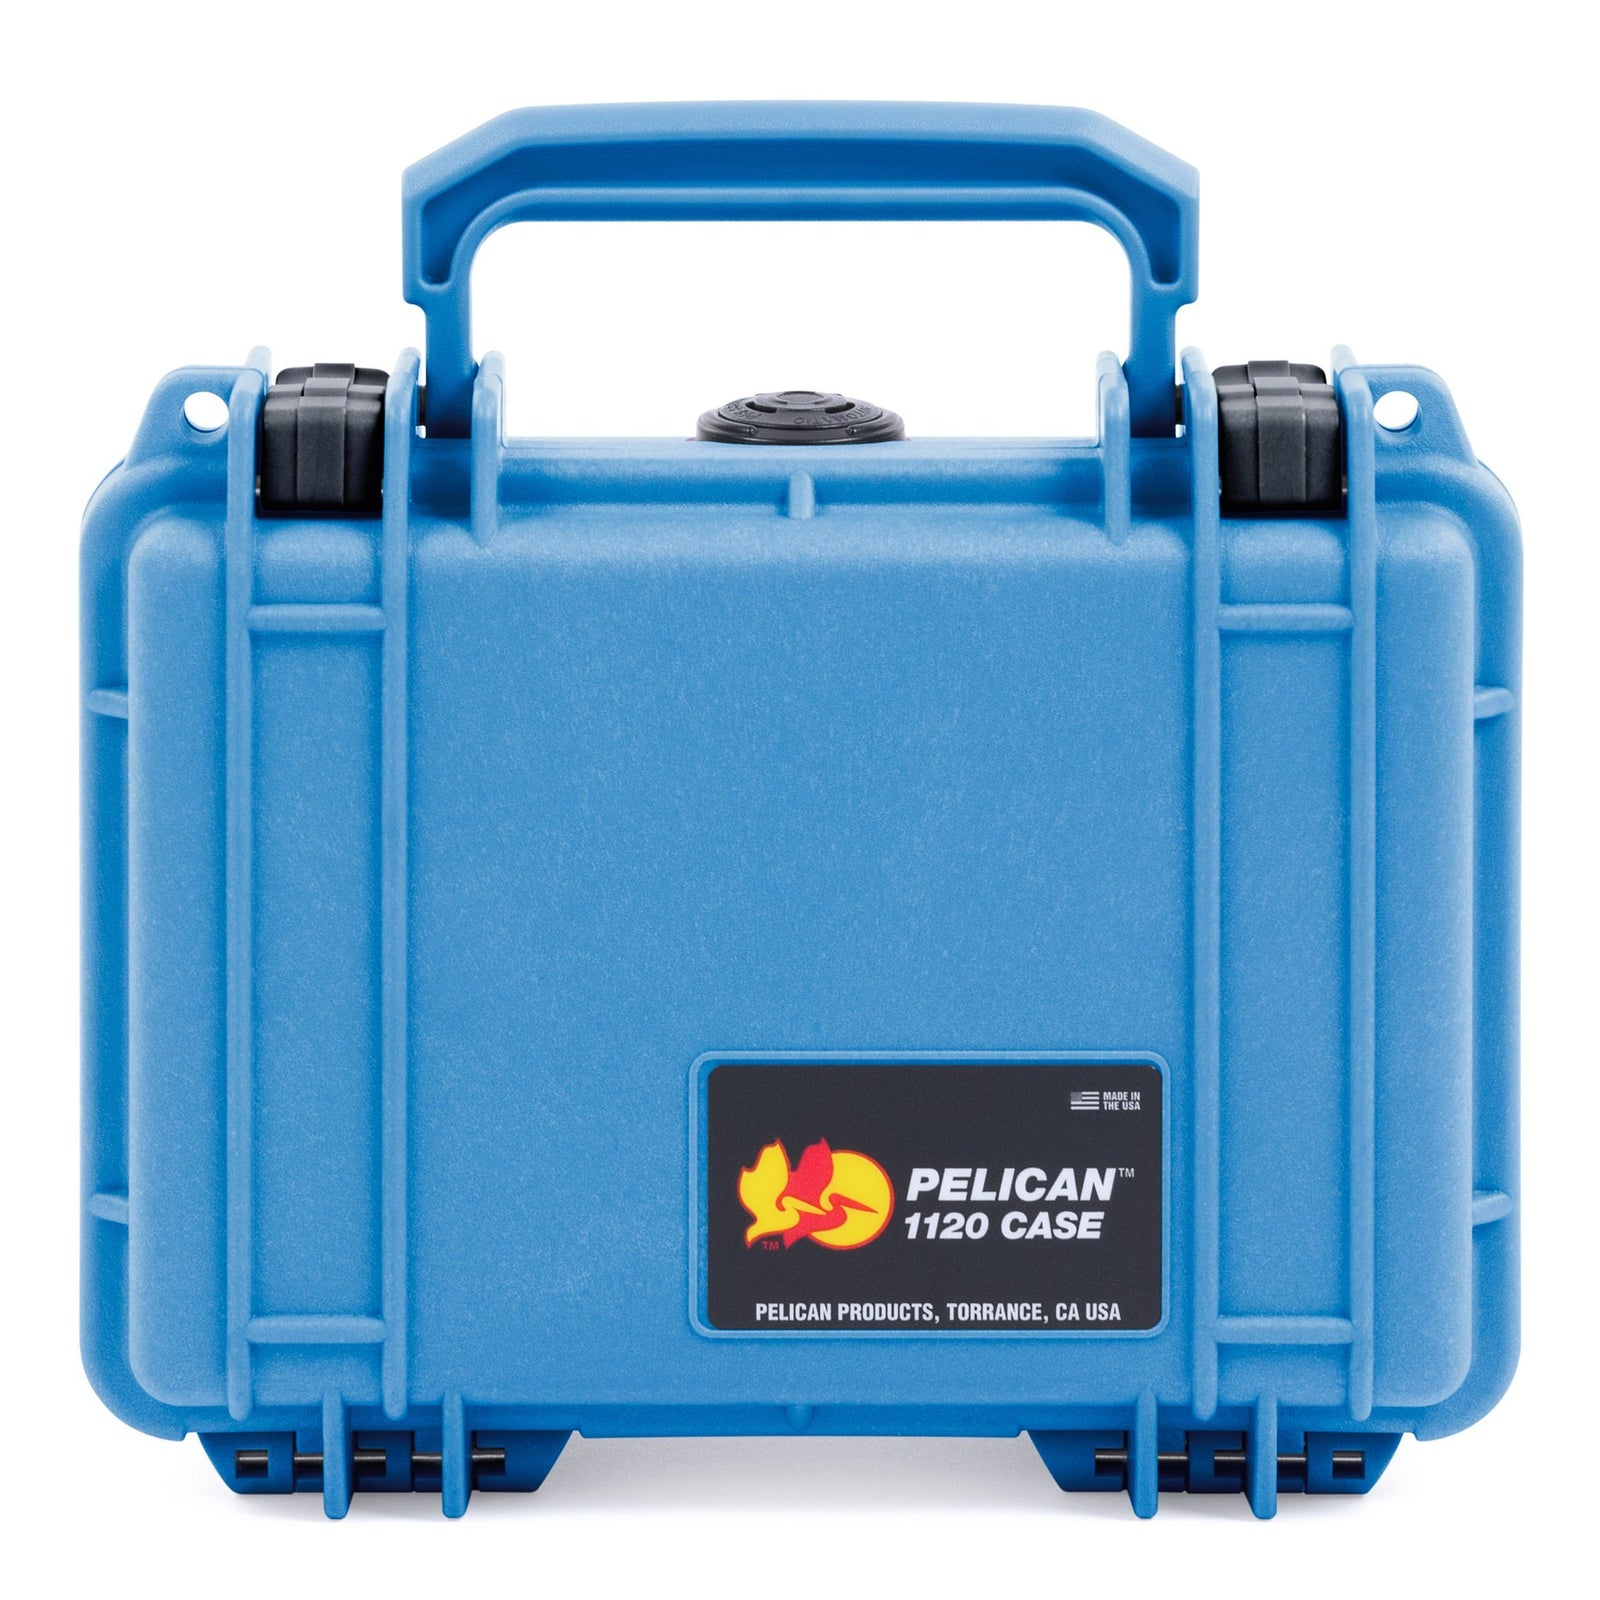 Black /& Blue Pelican 1520 case with Foam.